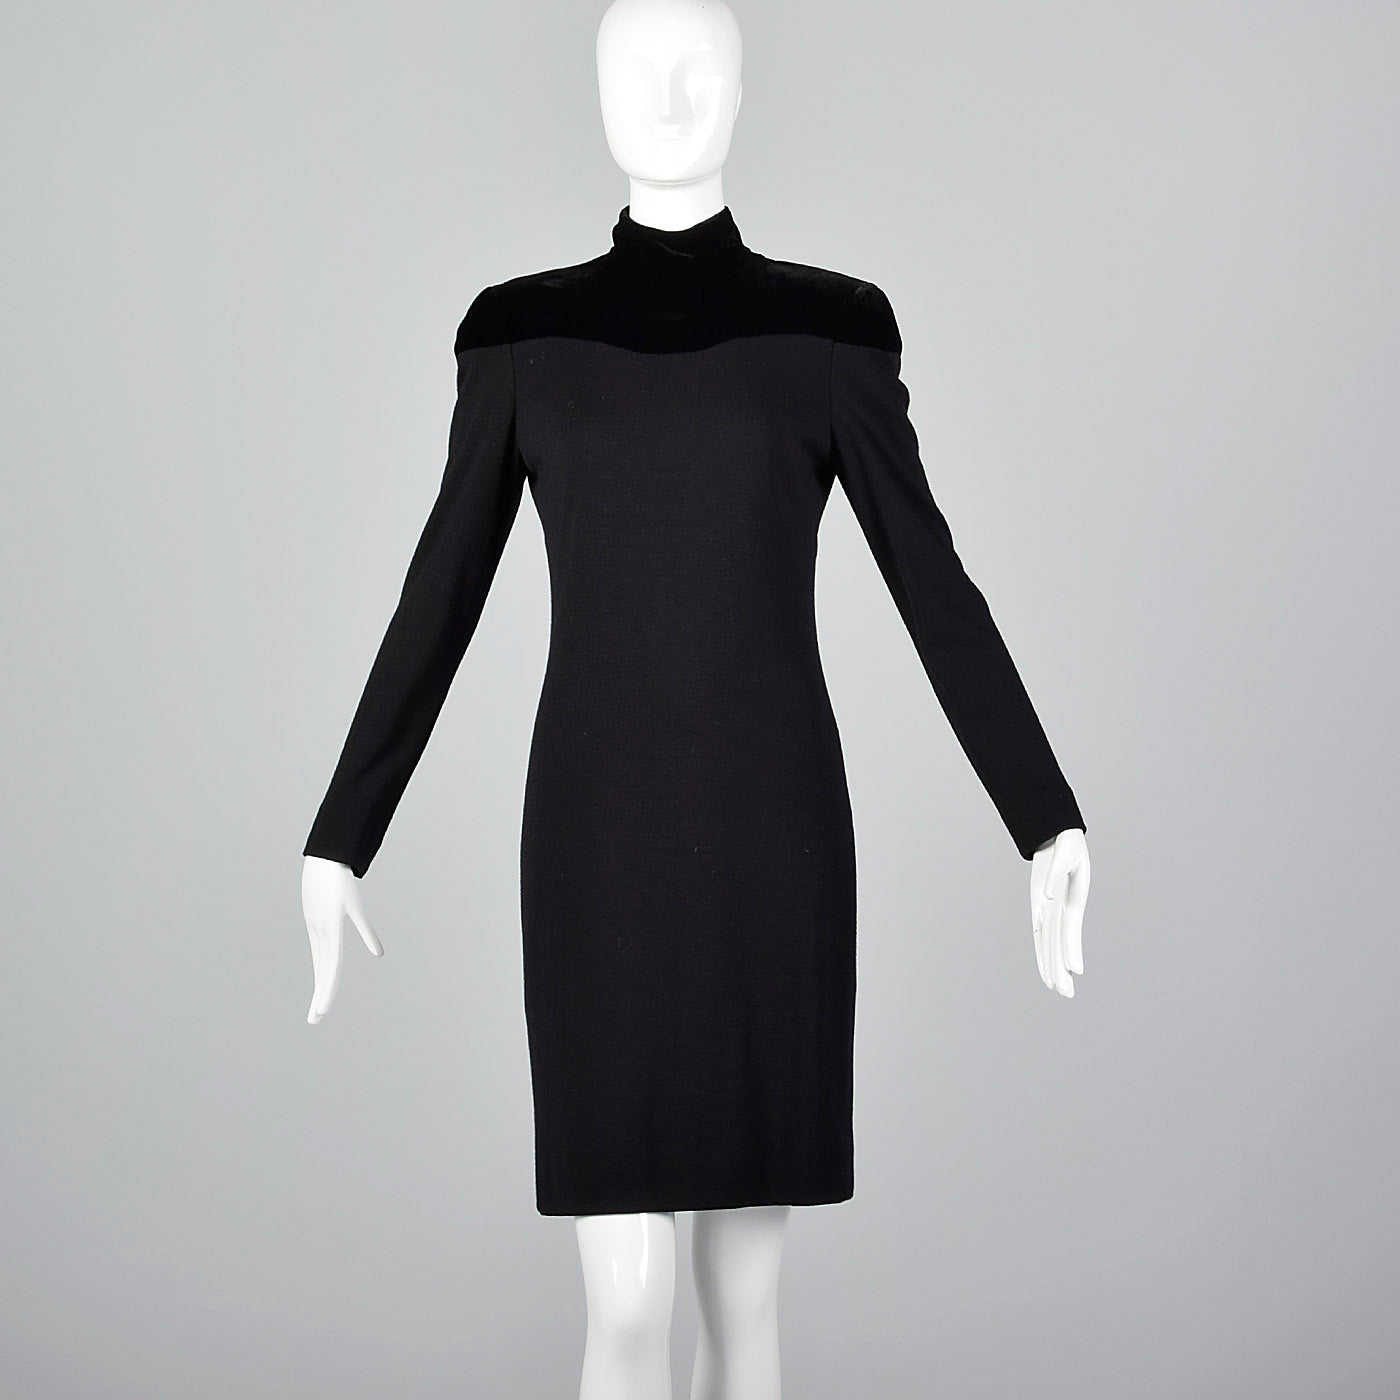 Lanvin Tight Black Pencil Dress with Velvet Shoulders